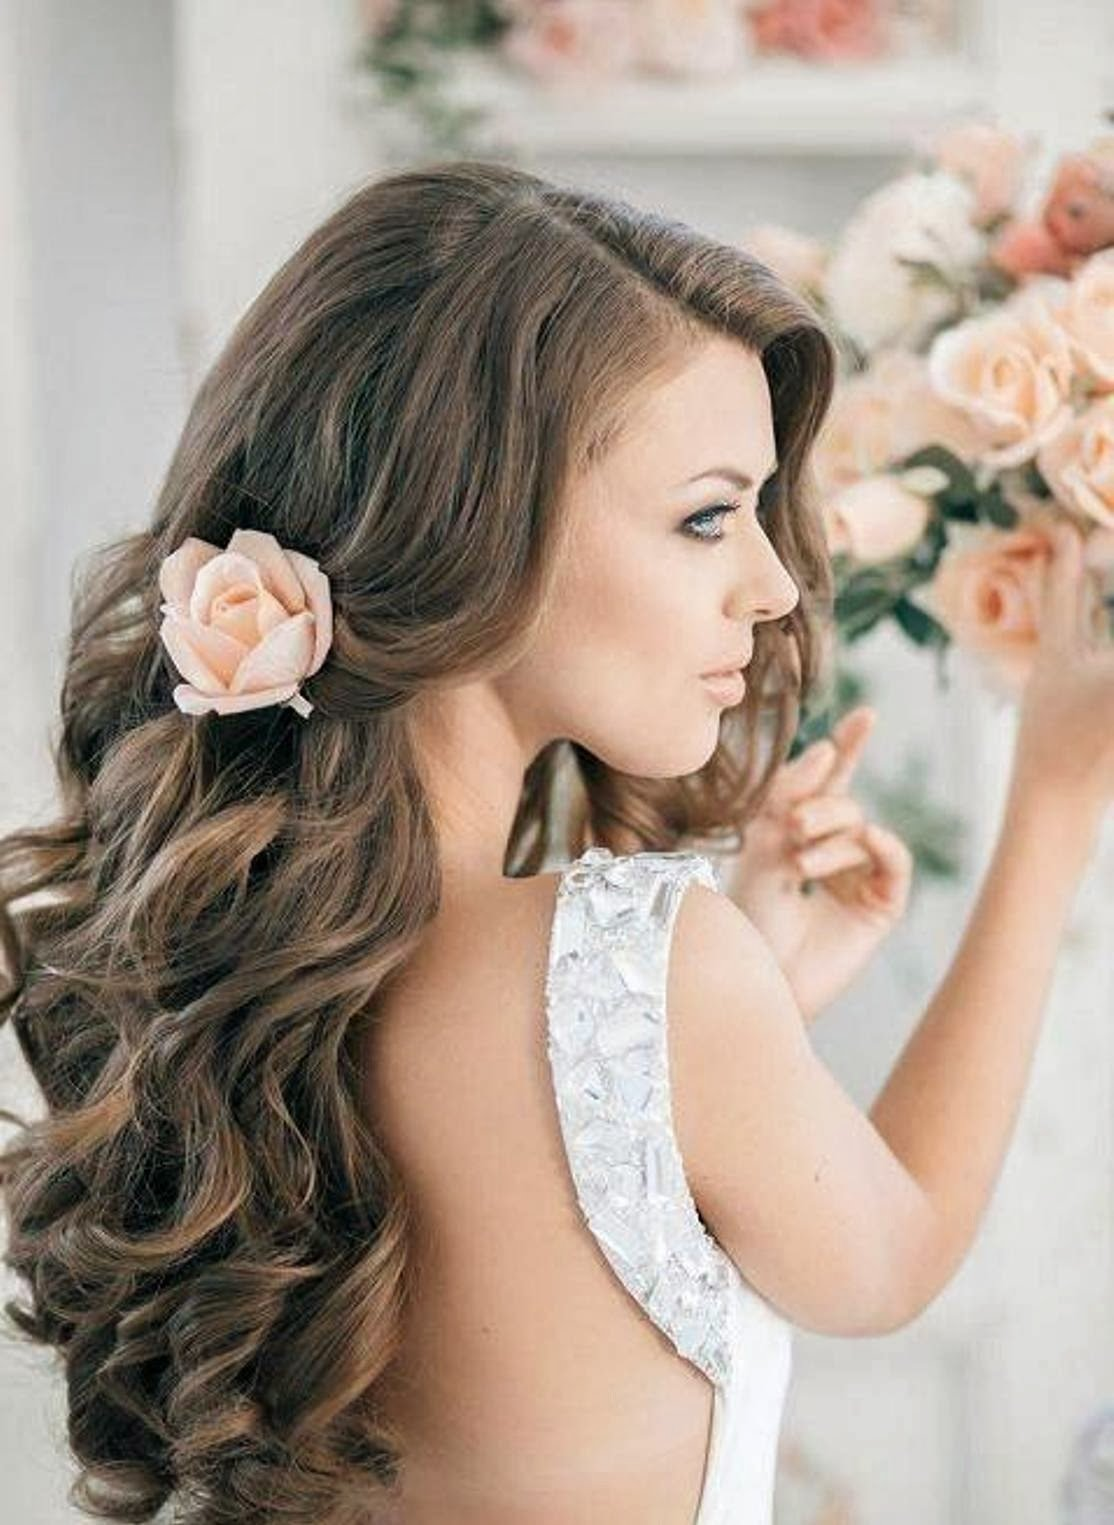 New Hairstyles For Long Hair Female Hair Fashion Style Color Styles Cuts Ideas With Pictures